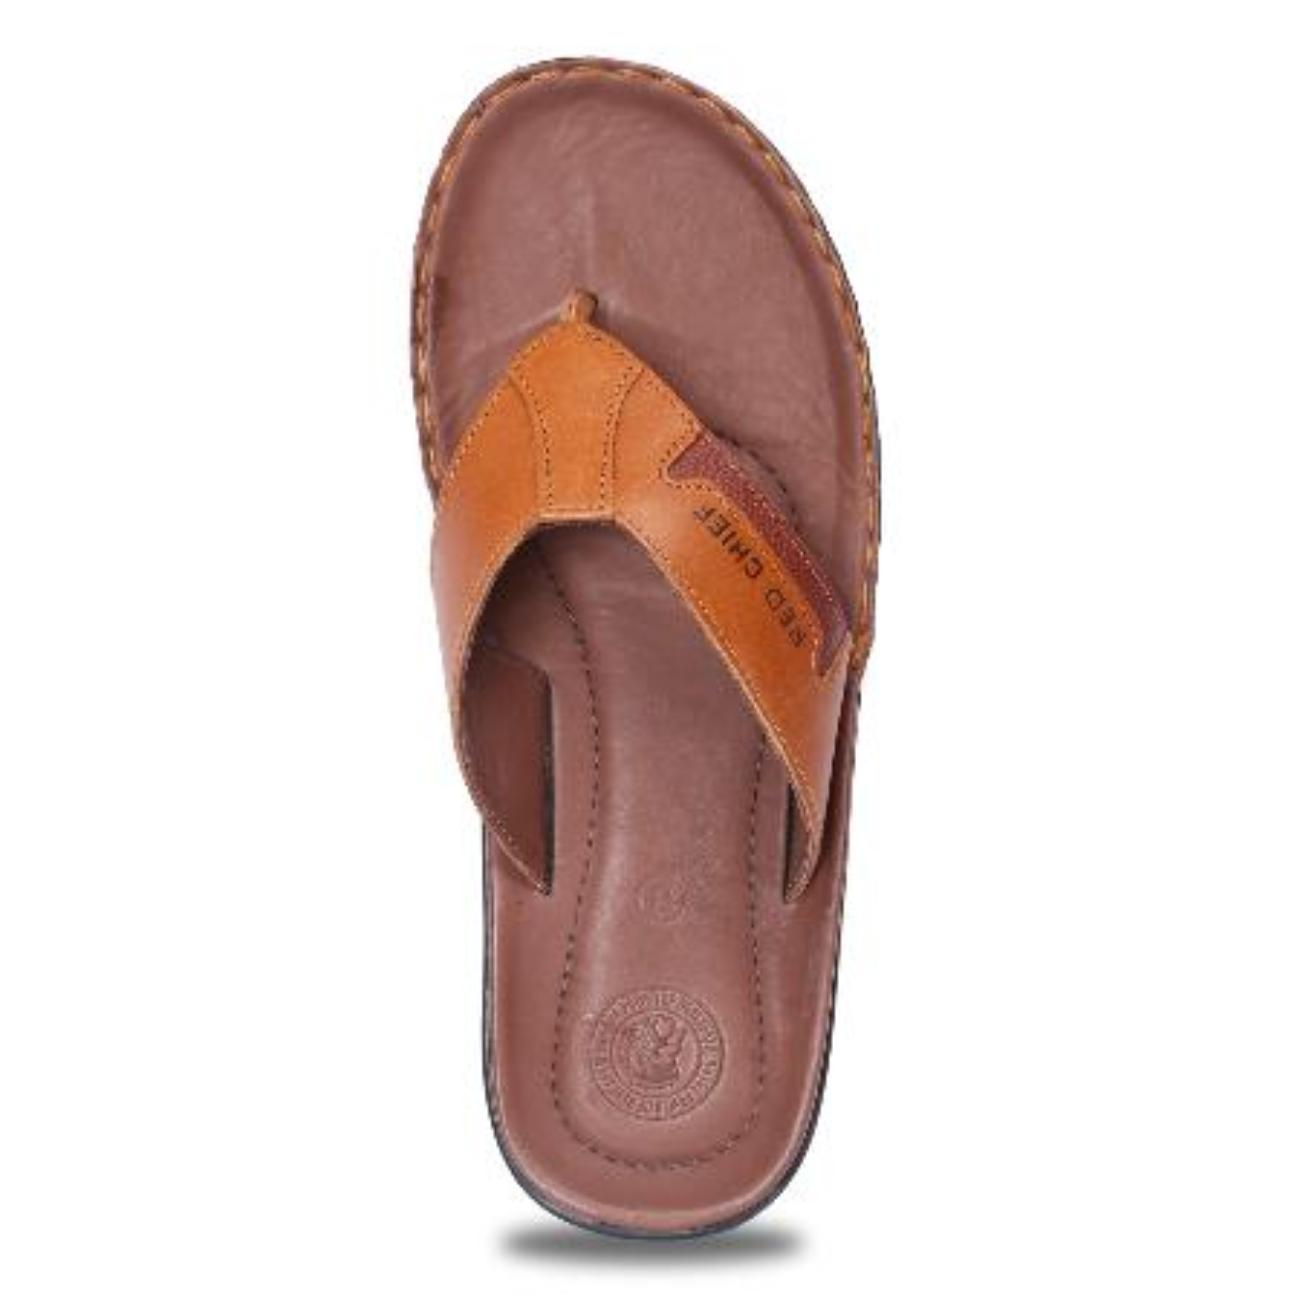 tan slip-on slippers top view